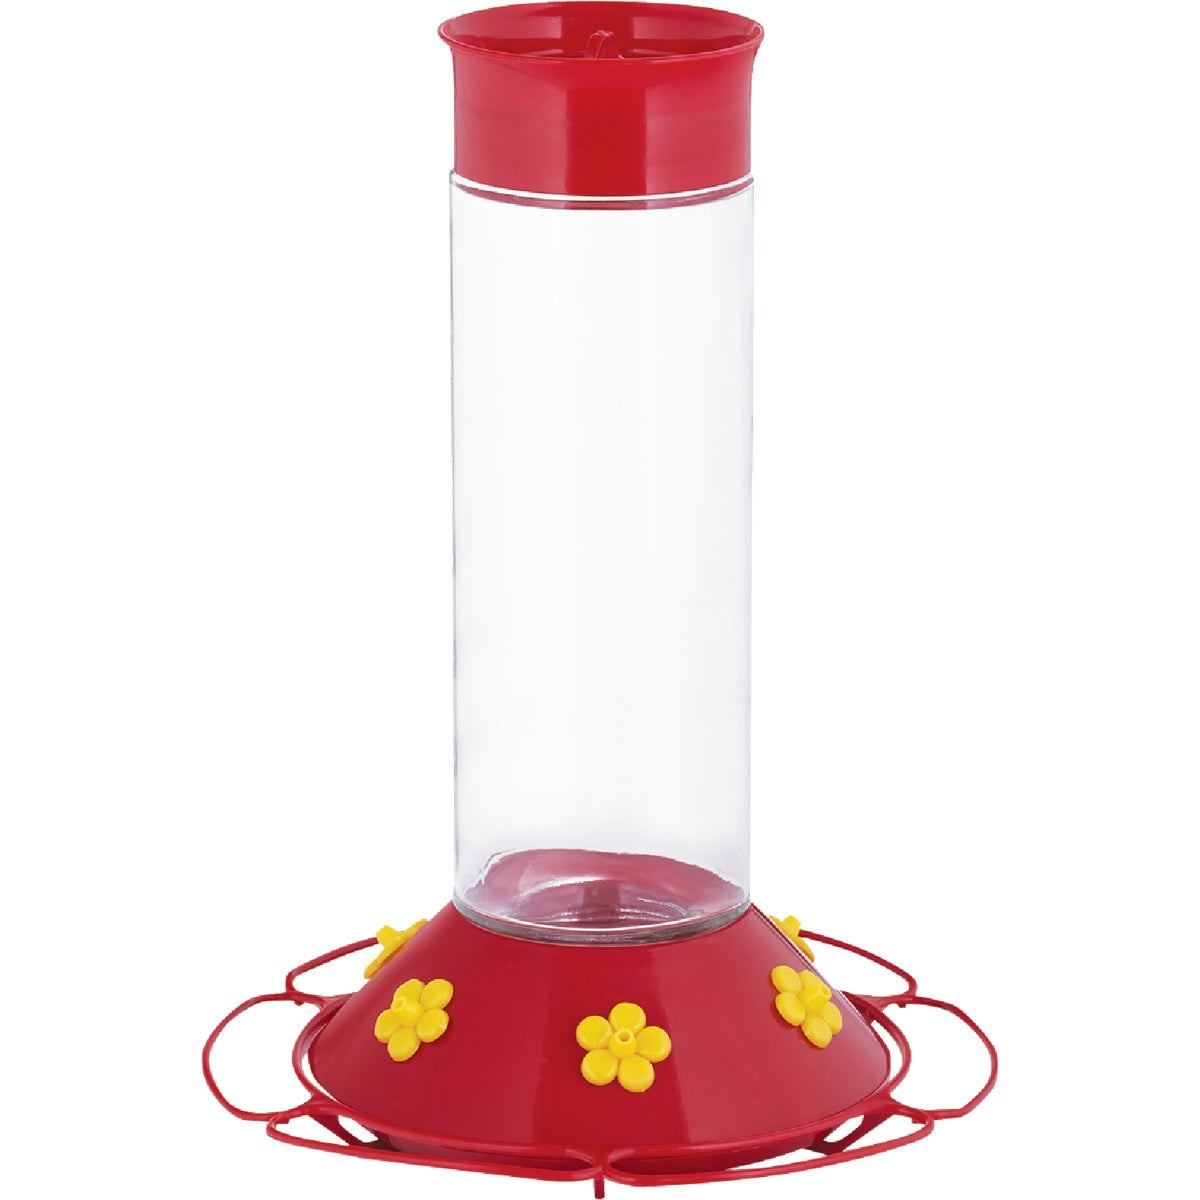 30OZ HUMMINGBIRD FEEDER - 209-6 by Woodstream Corp